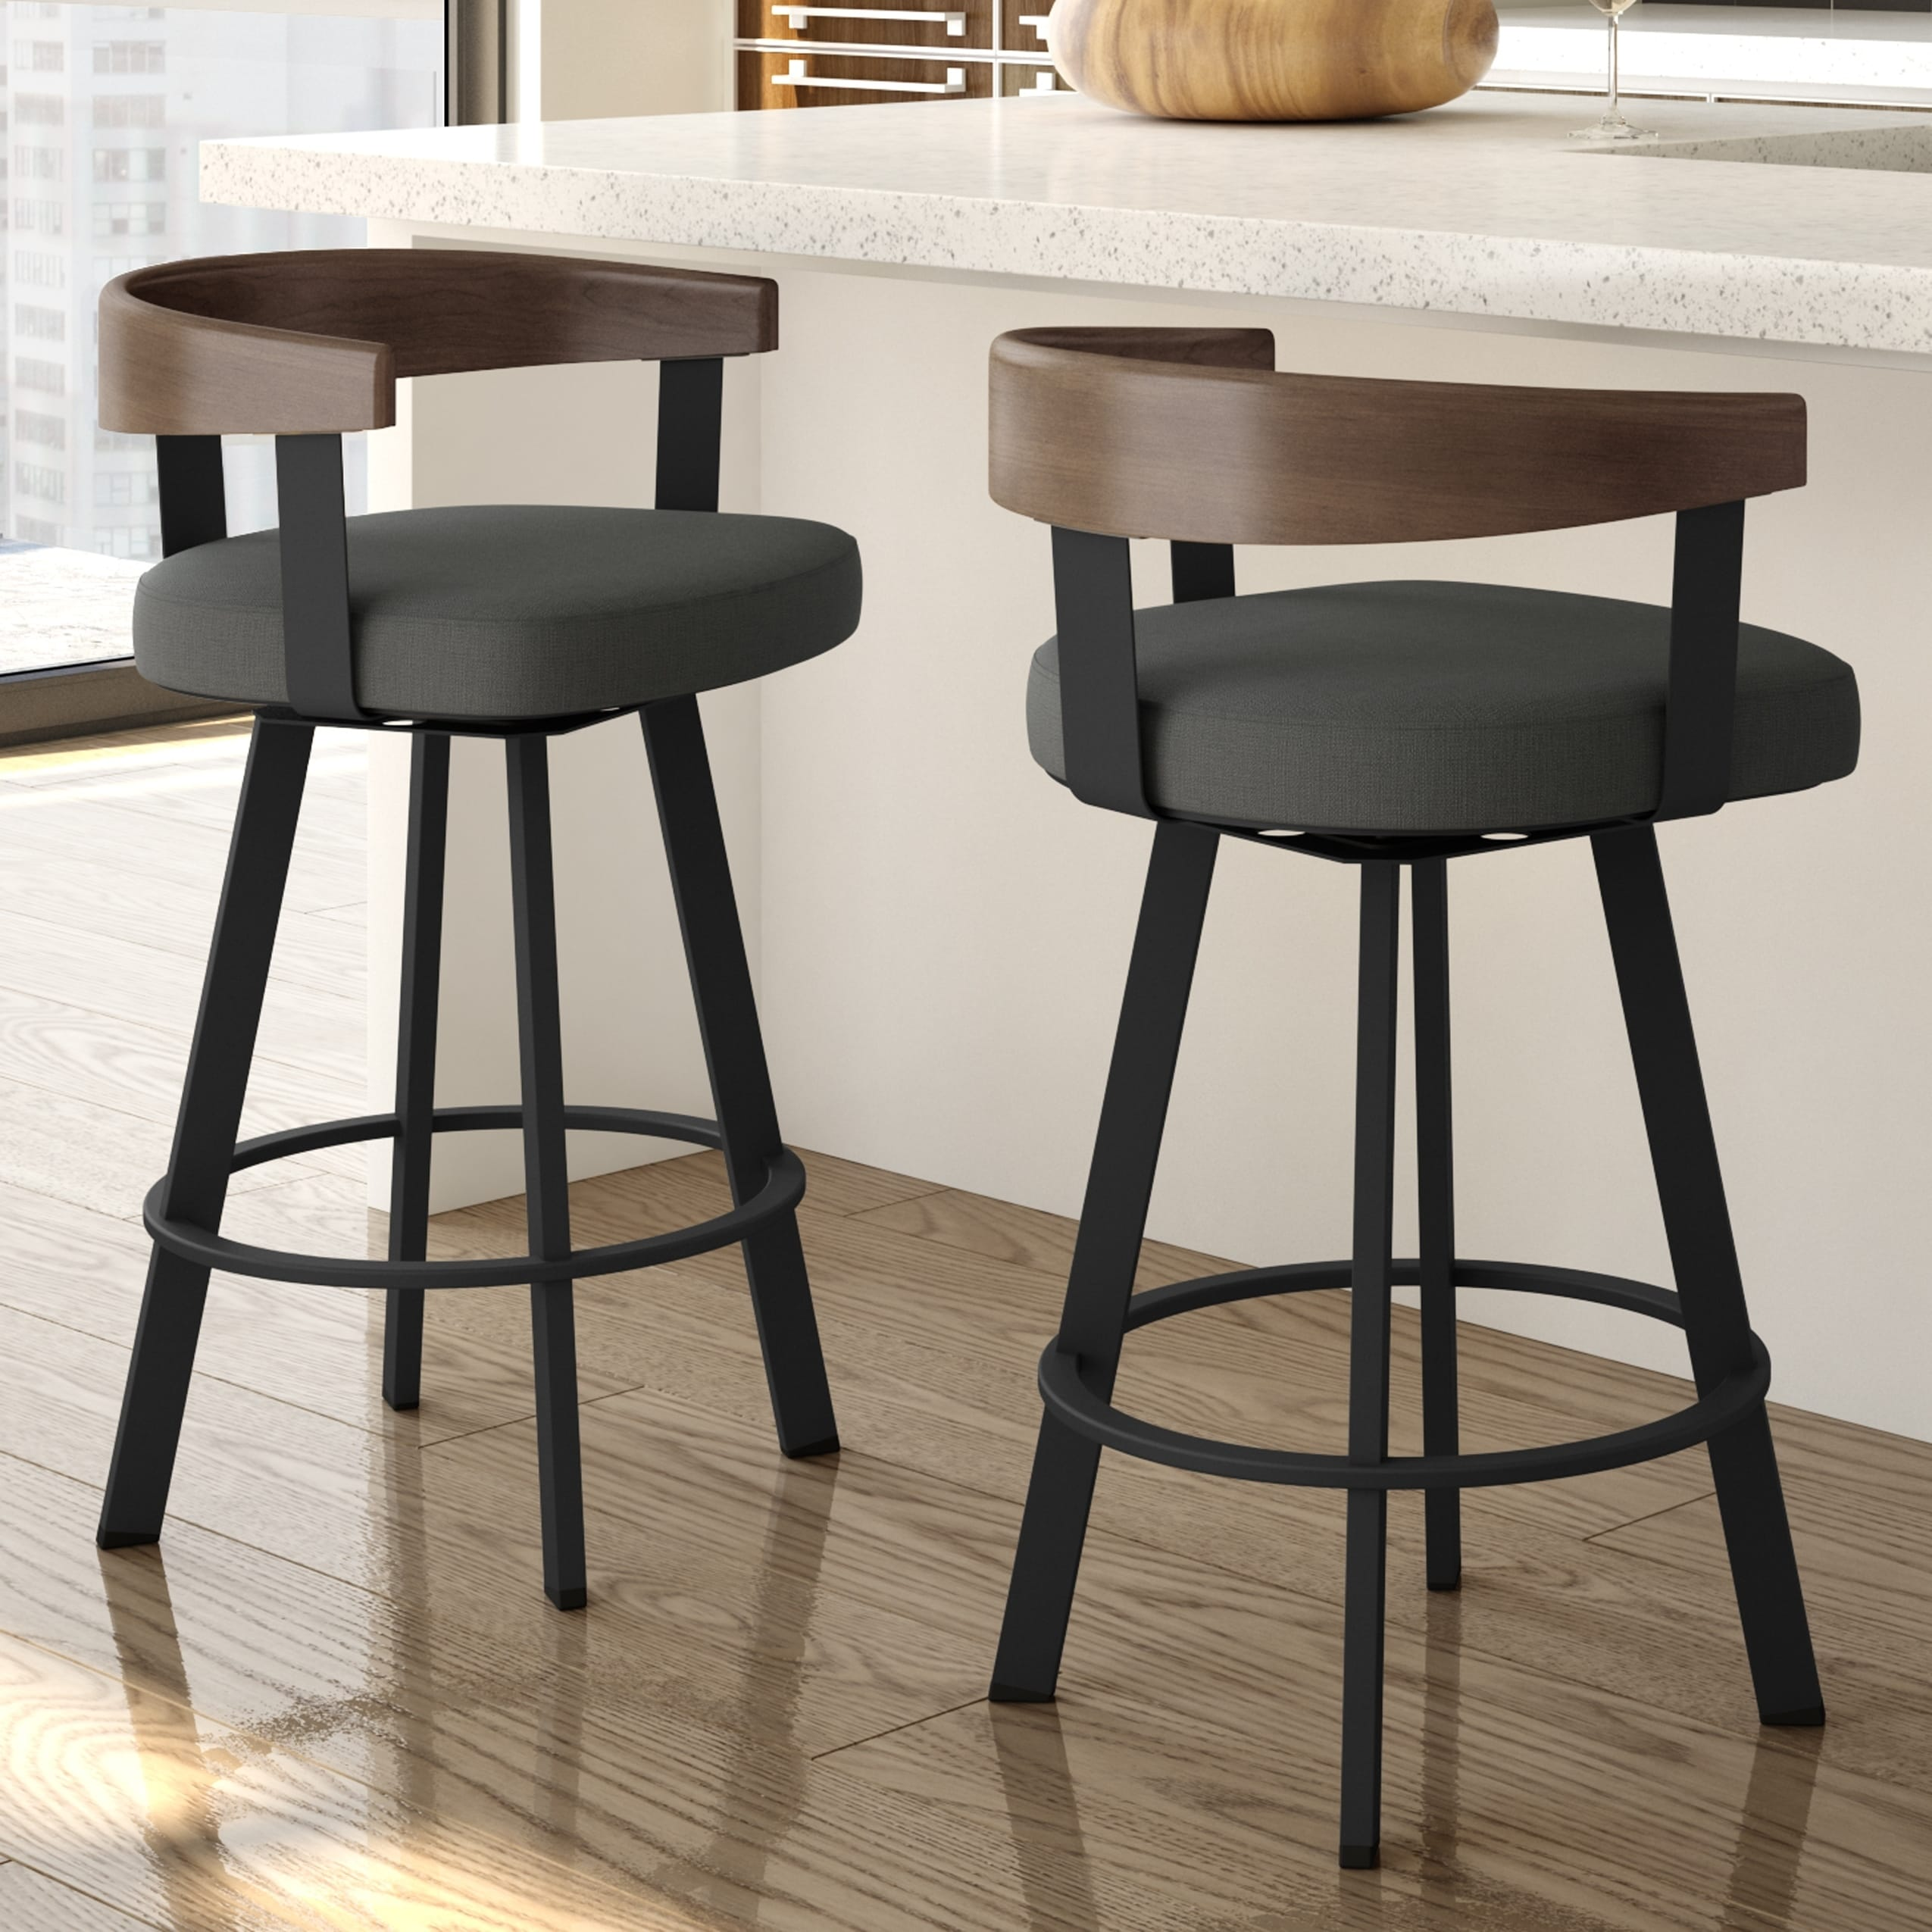 Outstanding Buy Counter Height 23 28 In Counter Bar Stools Online Short Links Chair Design For Home Short Linksinfo